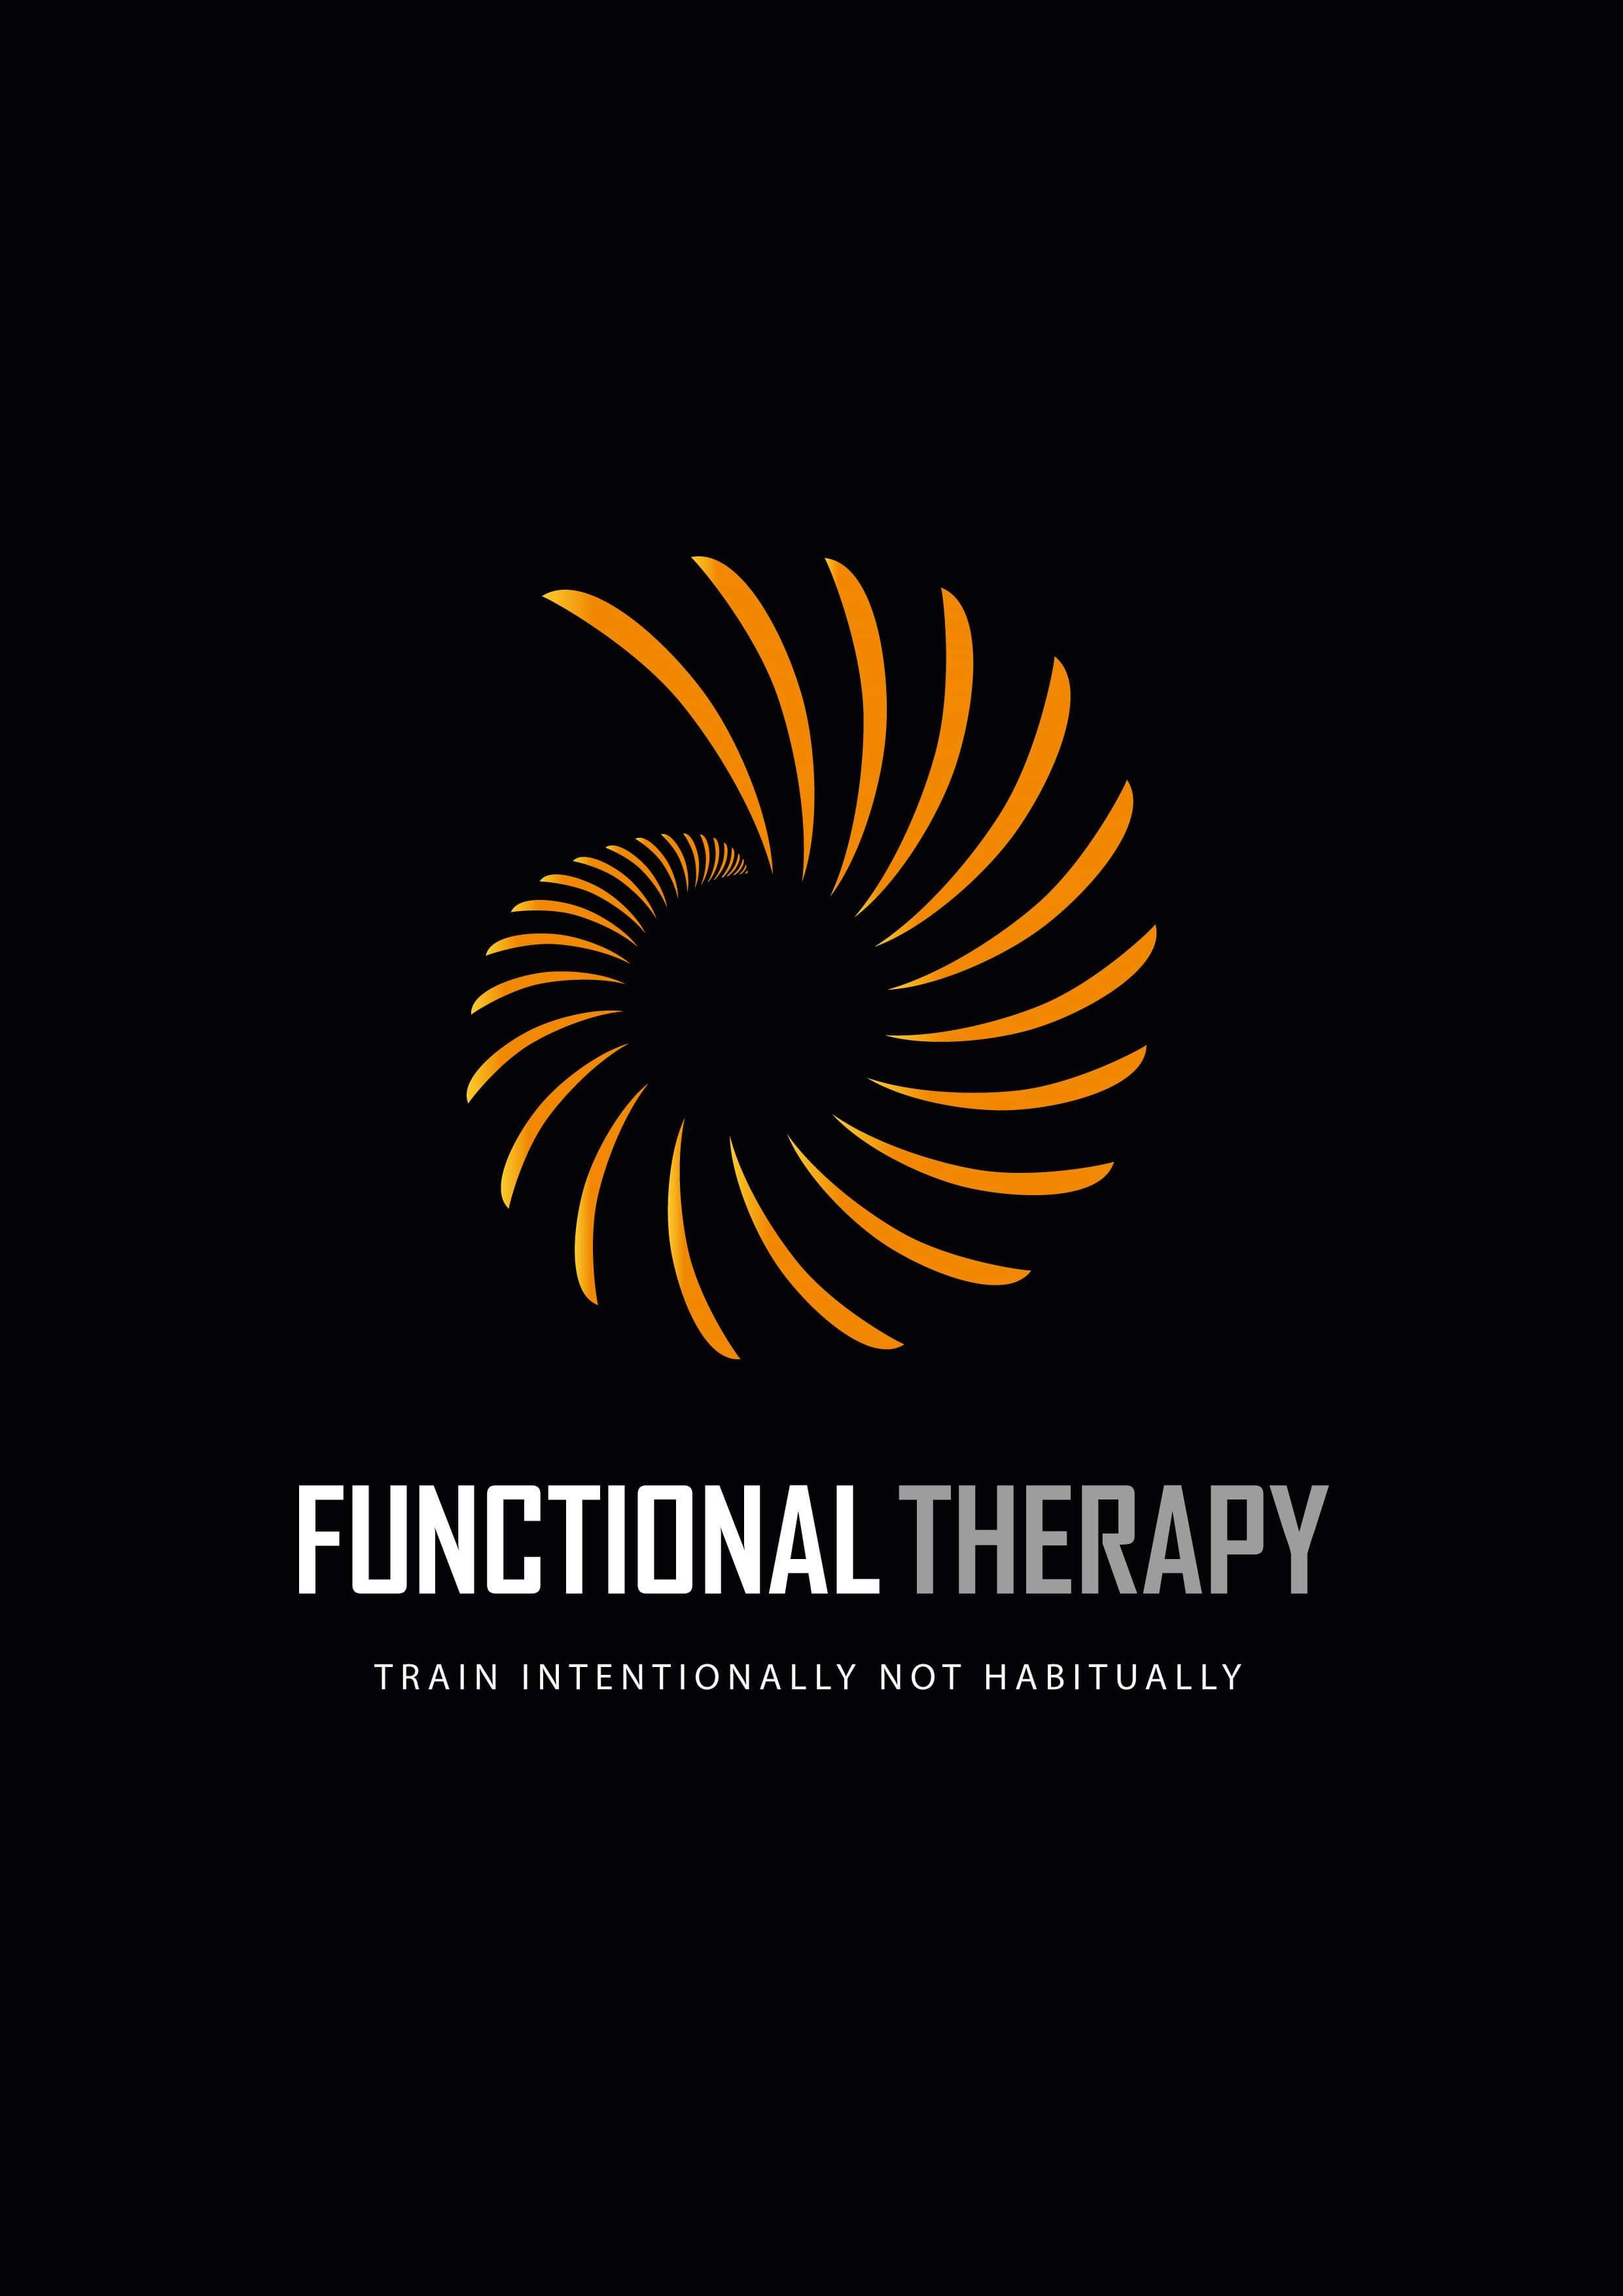 FUNCTIONAL THERAPY LIMITED